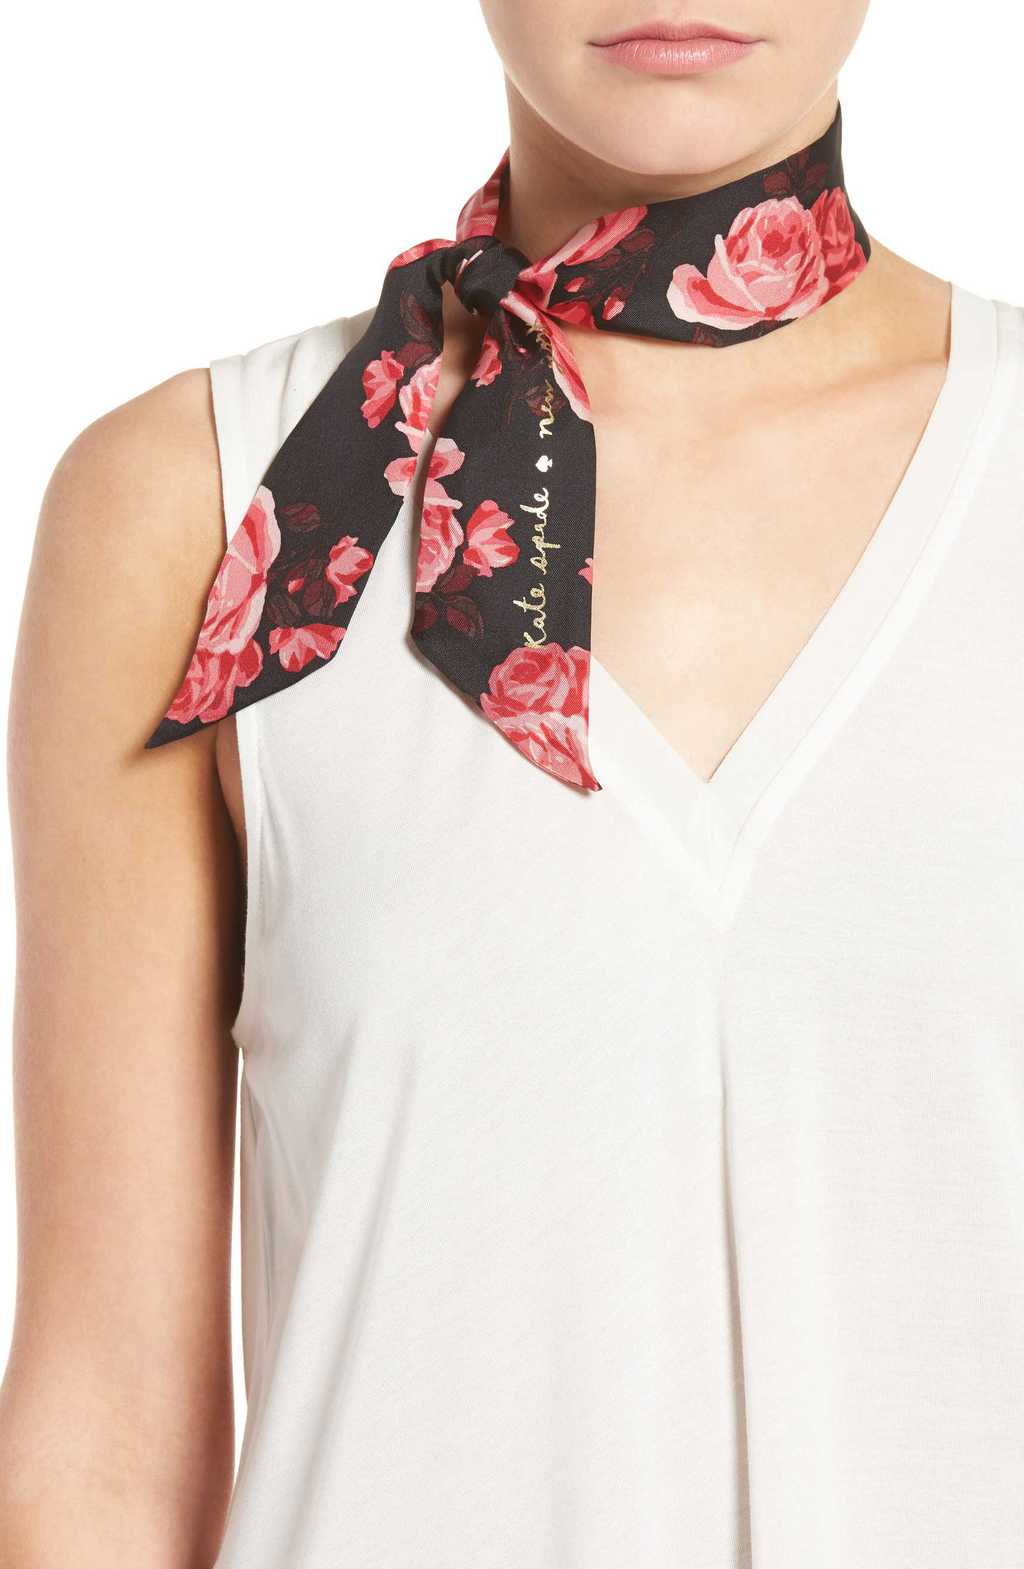 Kate Spade rose printed scarf from Nordstrom